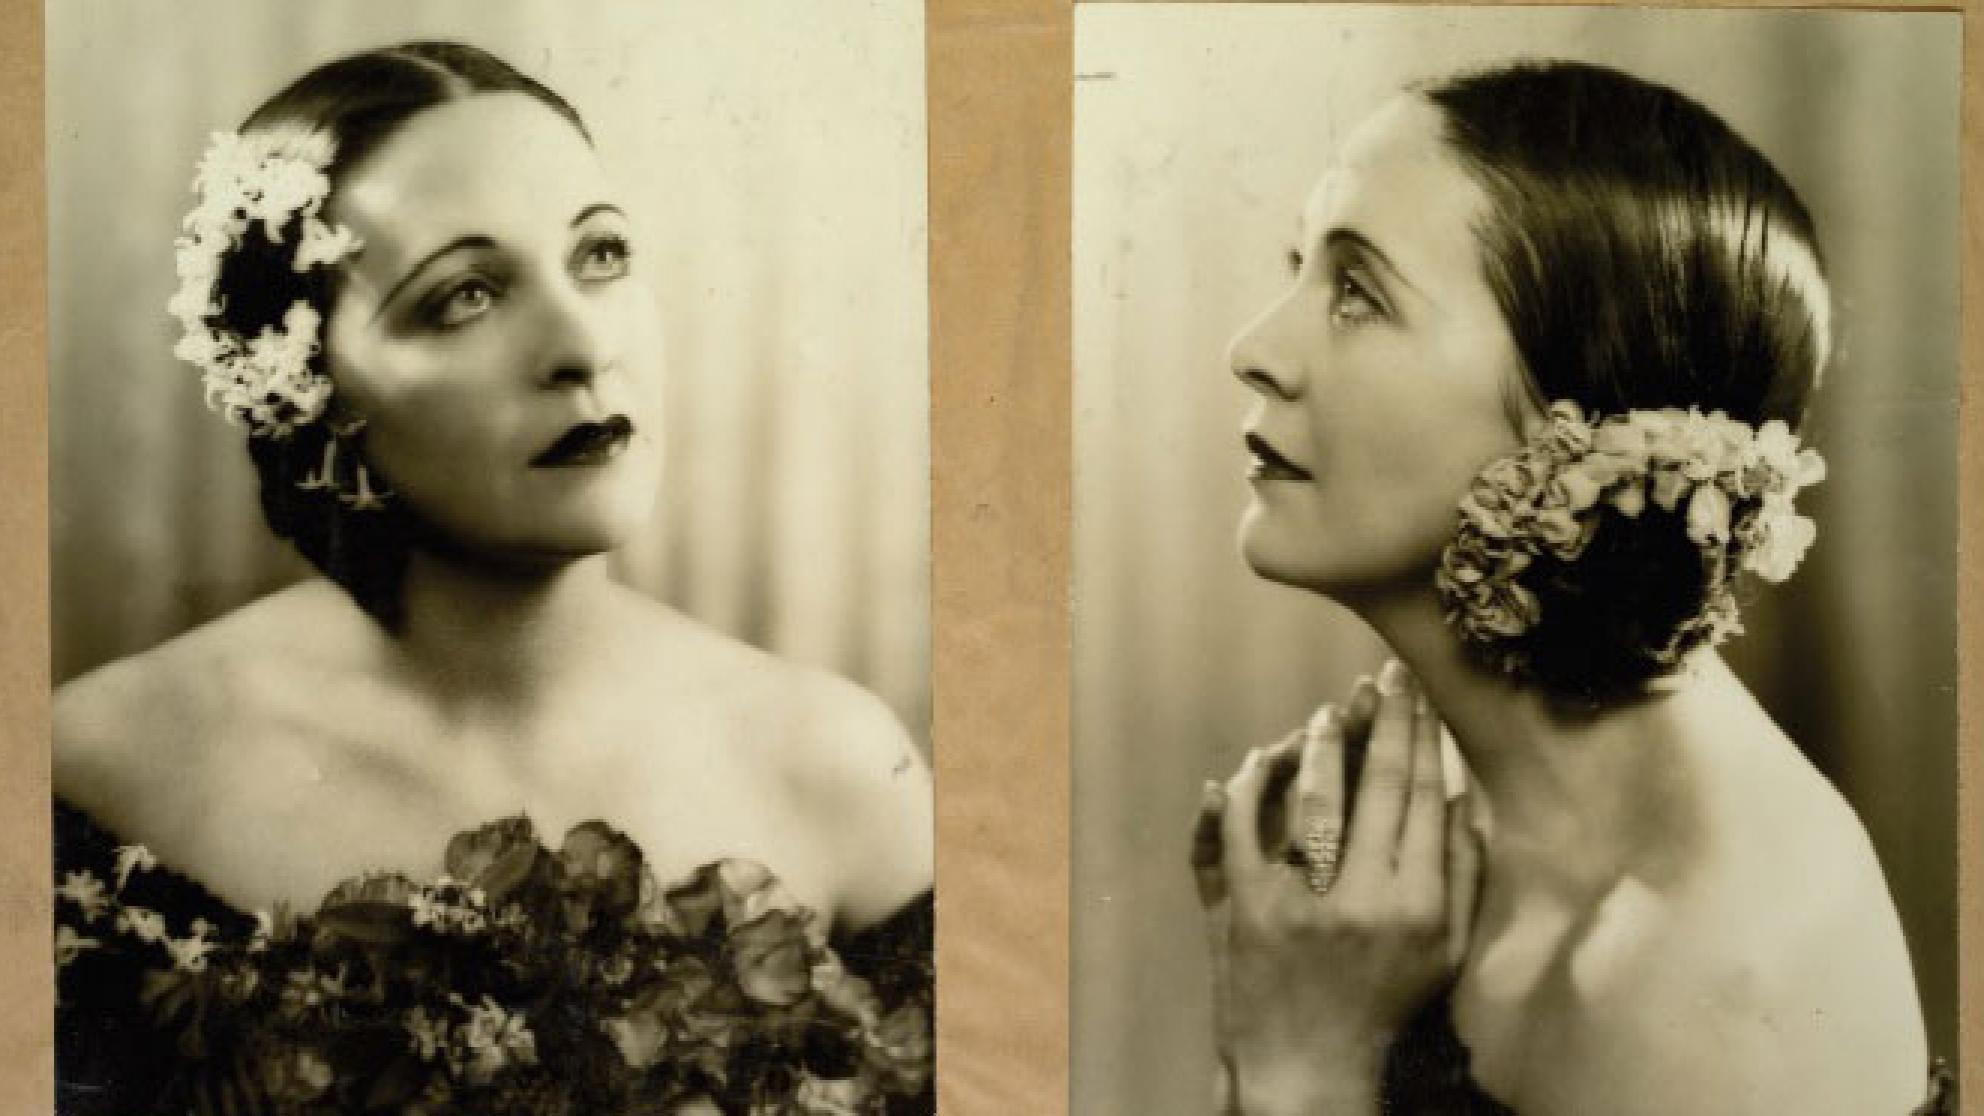 Double sepia head and shoulders portrait of a woman with flowers in her hair